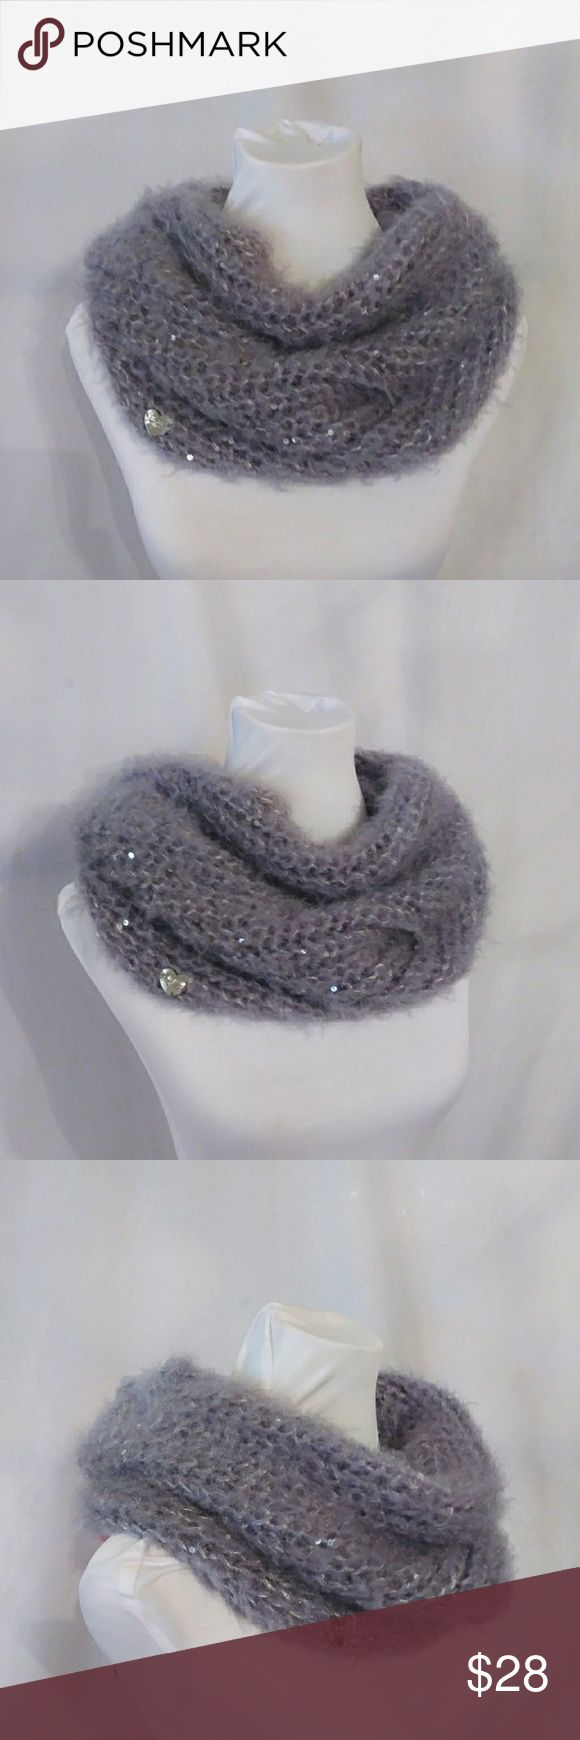 Betsey Johnson Fuzzy Wuzzy Snood Betsey Johnson Fuzzy Wuzzy Snood in Grey. Loop styling with sequin details and 100% polyester. Sparkly and cozy! Betsey Johnson Accessories Scarves & Wraps